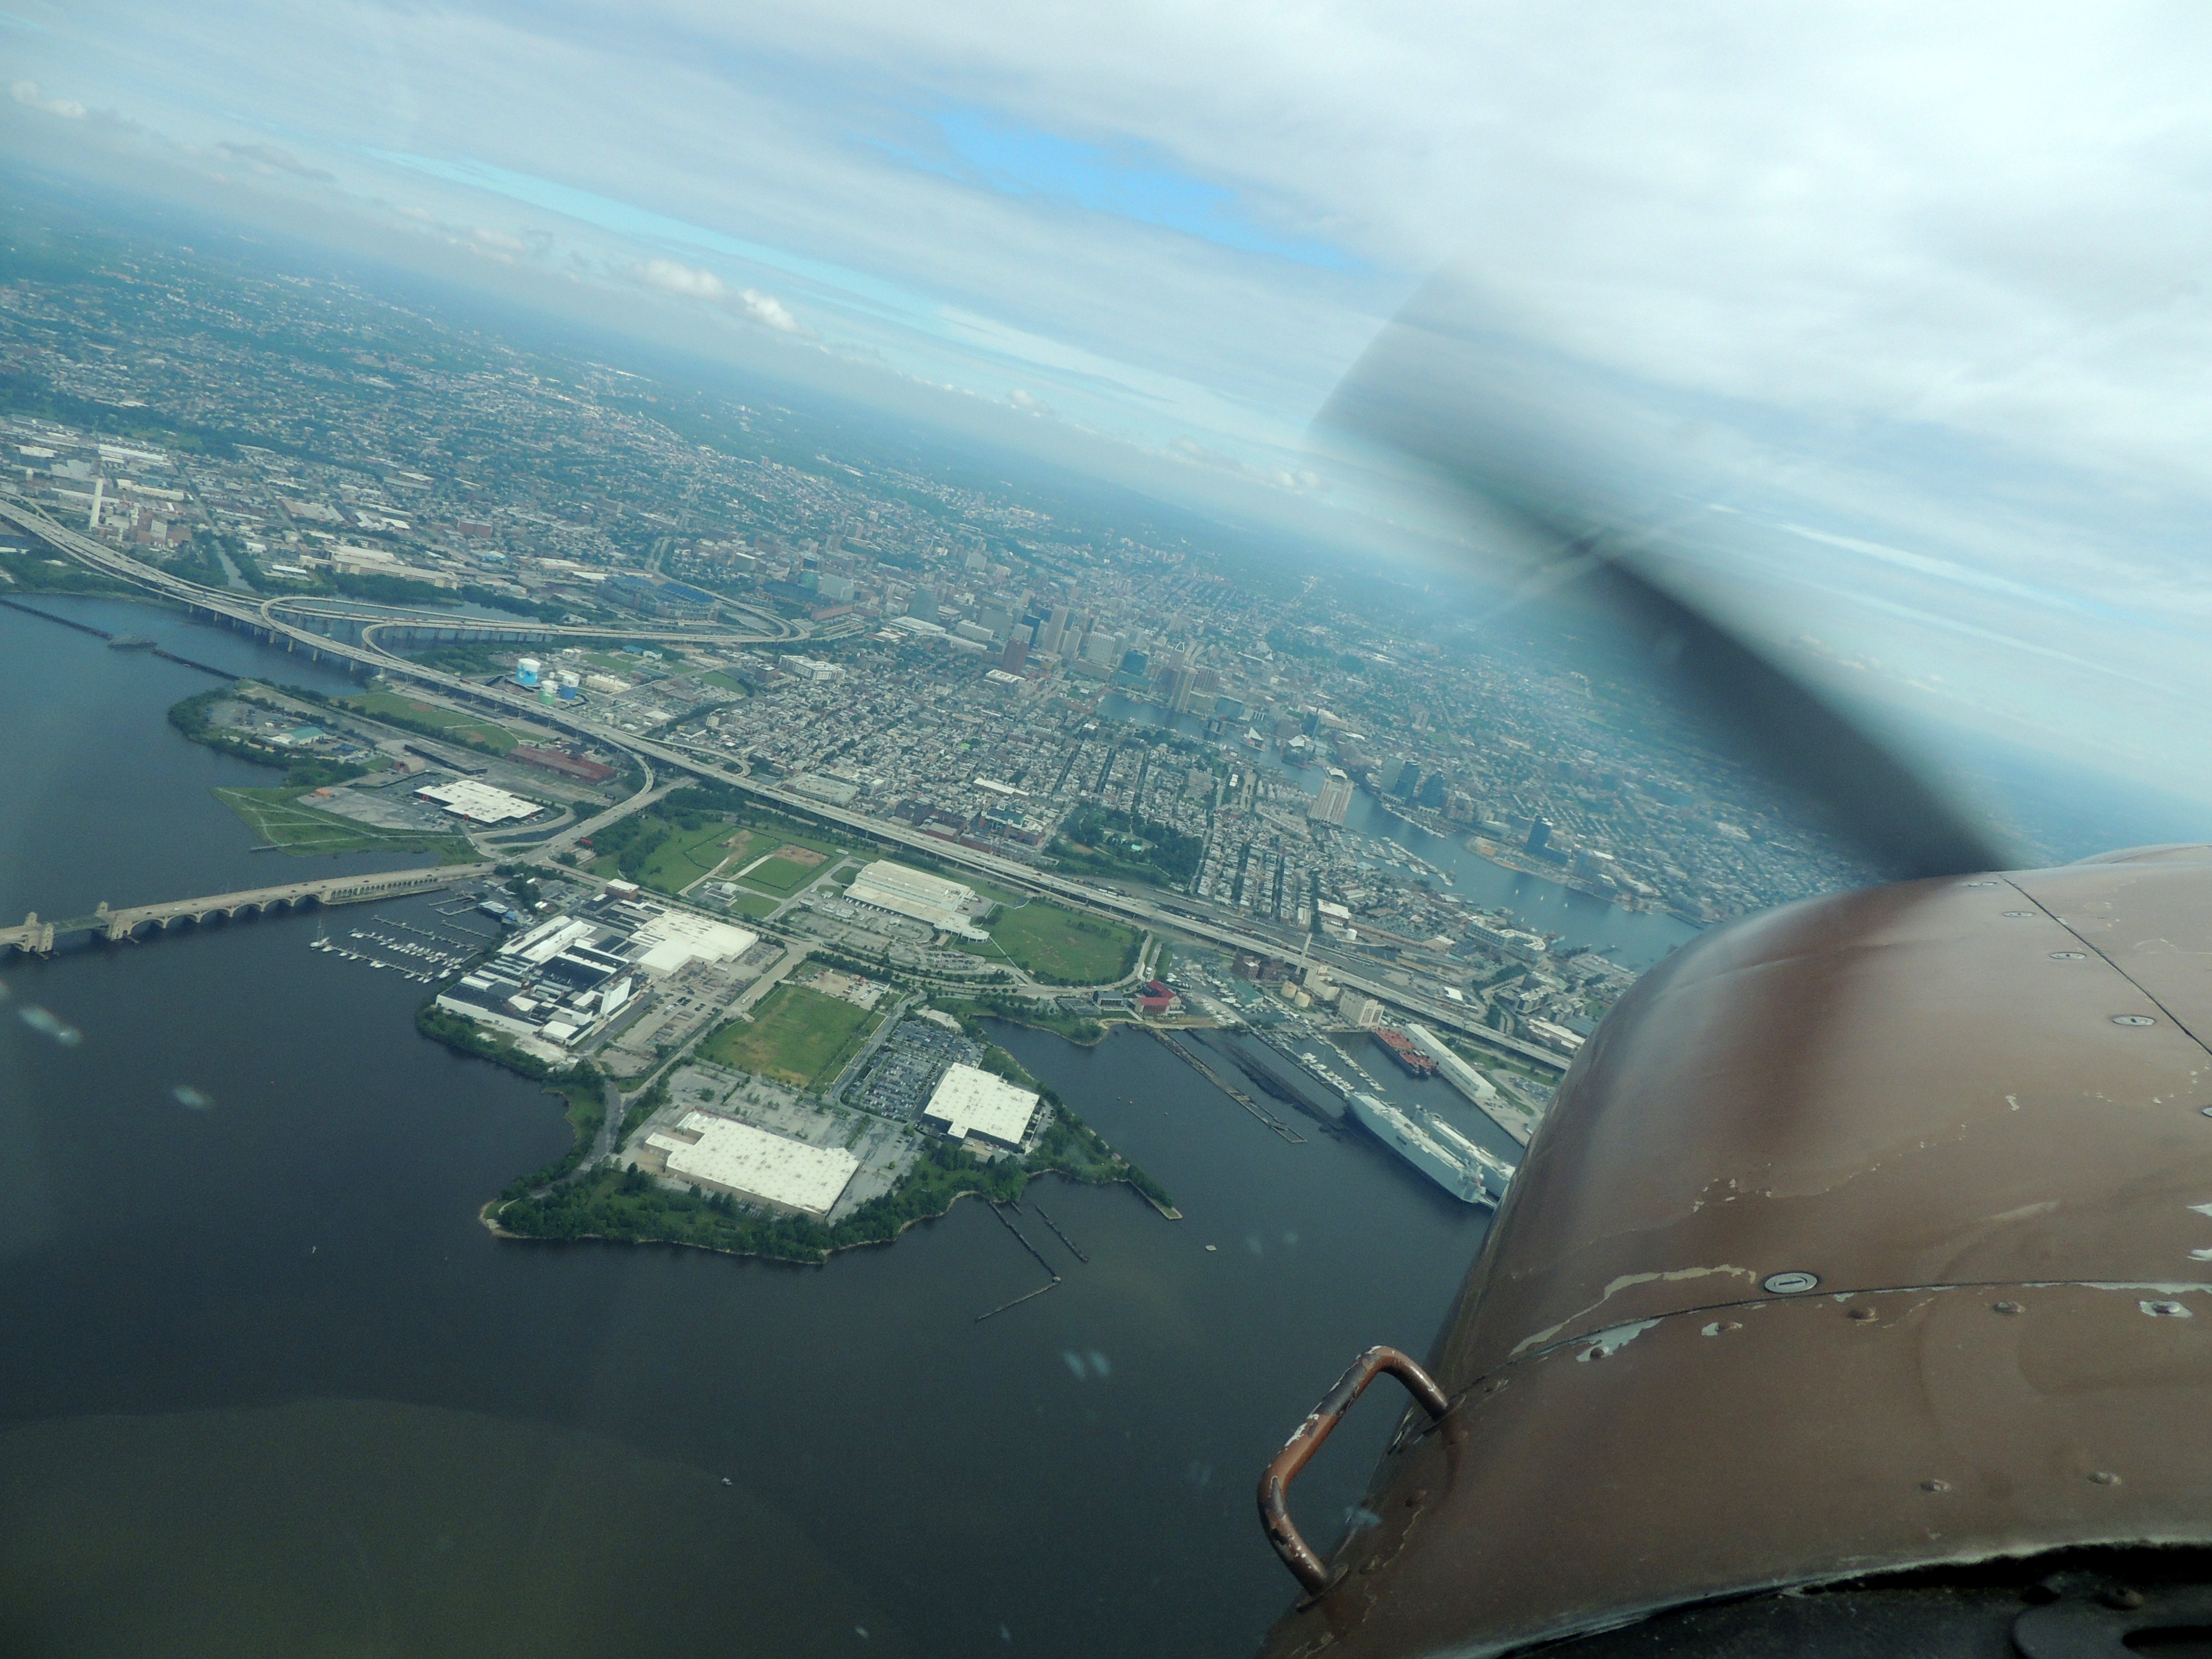 Turning left out over Inner Harbor after departing runway 15L at BWI